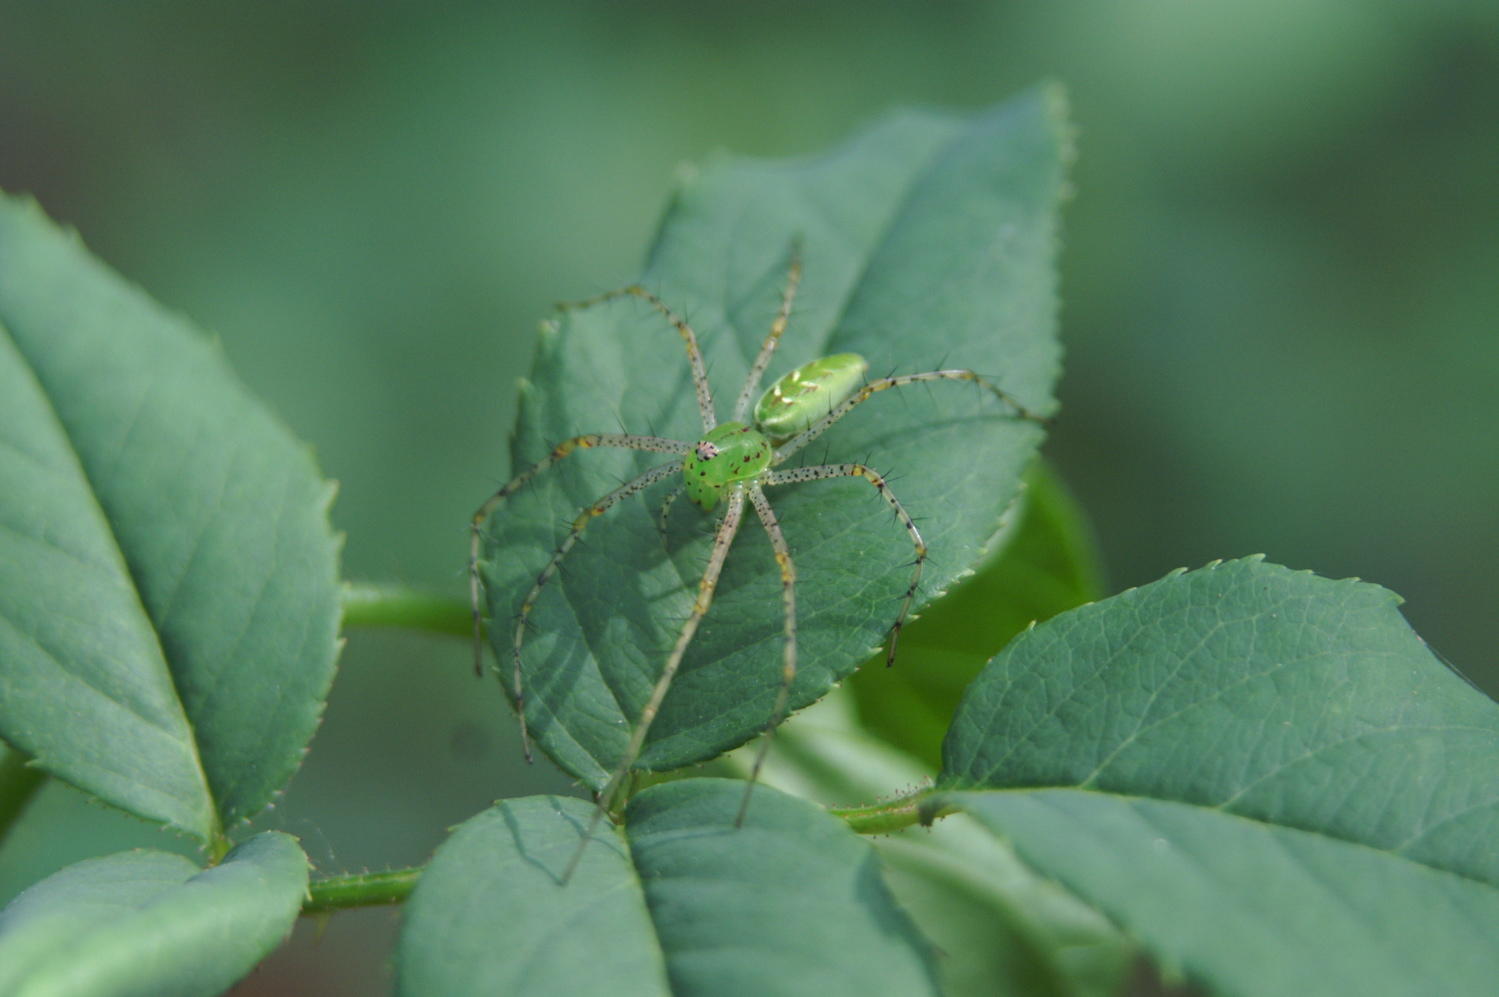 Green lynx spiders peucetia viridans are common in this area